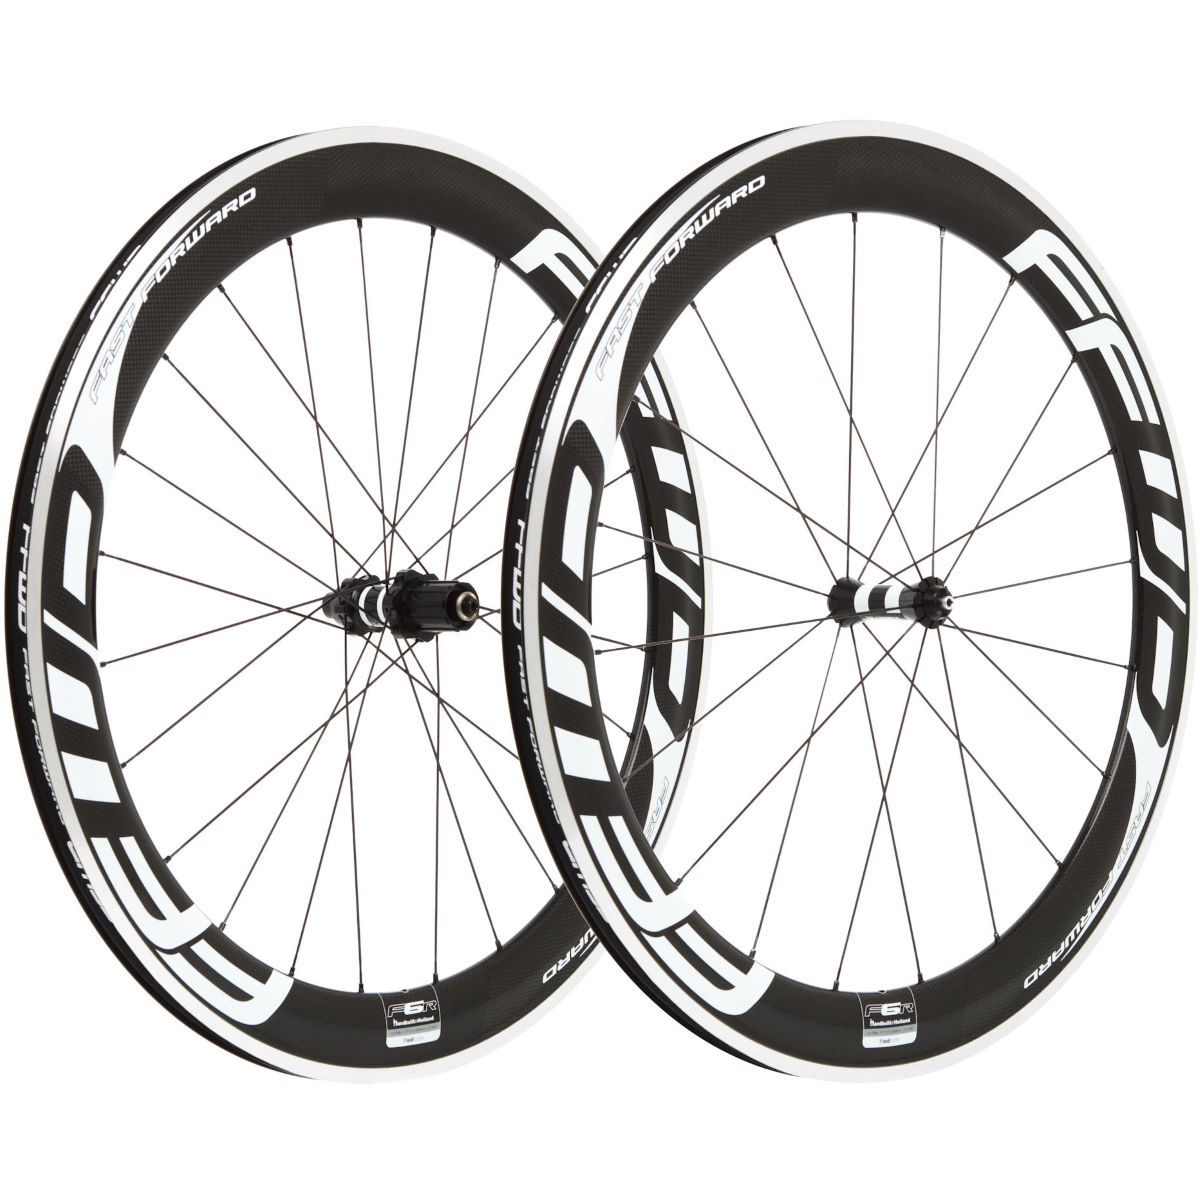 Fast Forward Carbon F6R Clincher 60mm SP Wheelset - Ruedas de competición